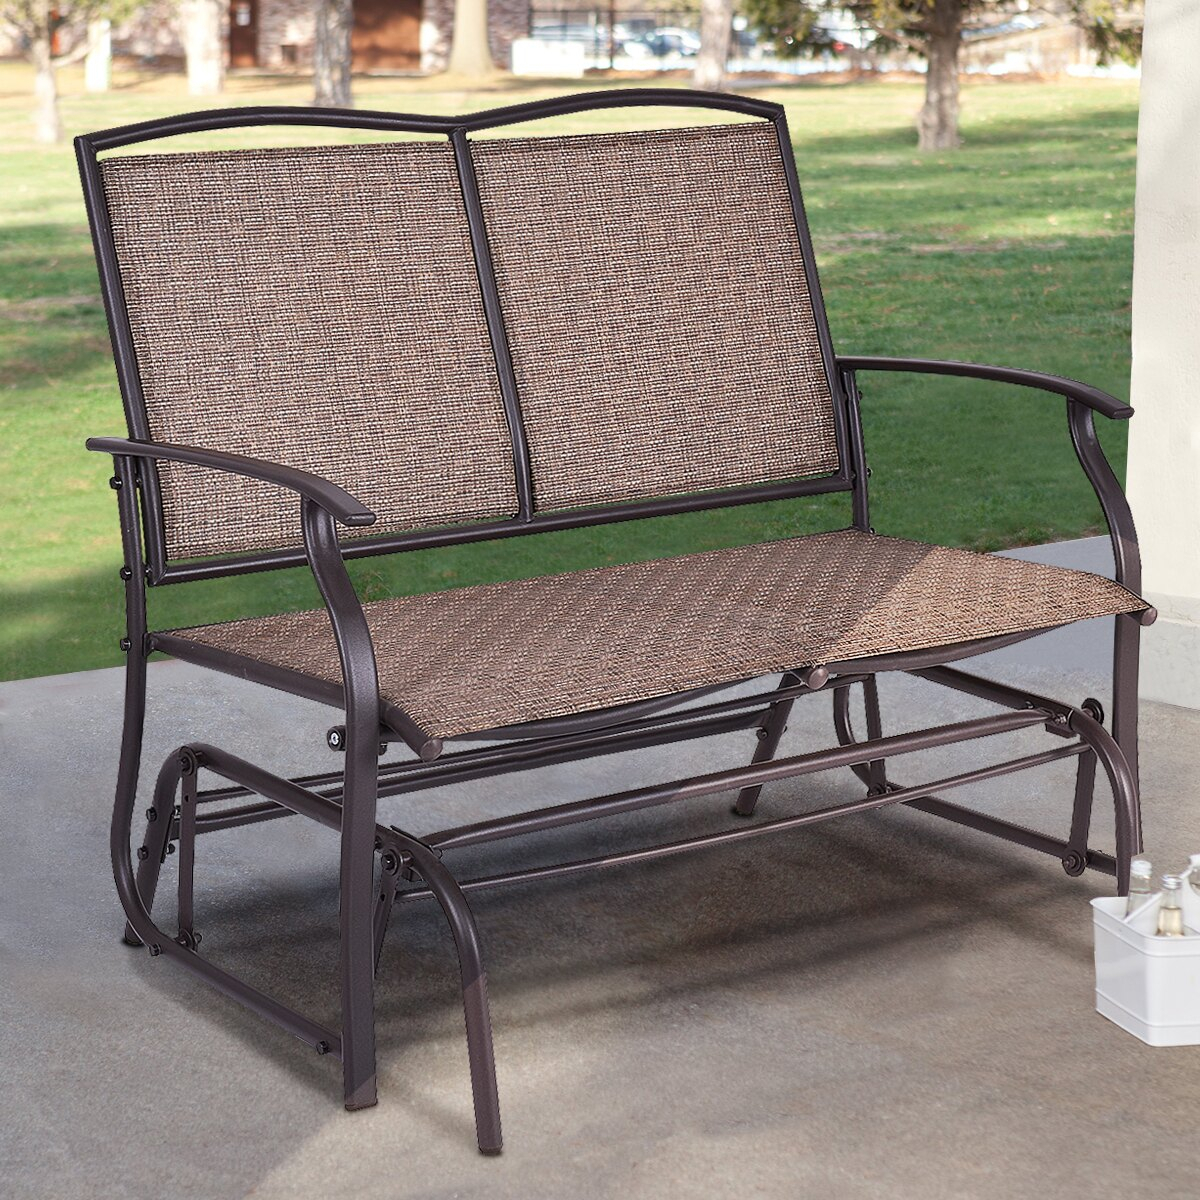 Costway Patio Glider Rocking Bench Double 2 Person Chair Loveseat Armchair Backyard Intended For Twin Seat Glider Benches (View 16 of 25)